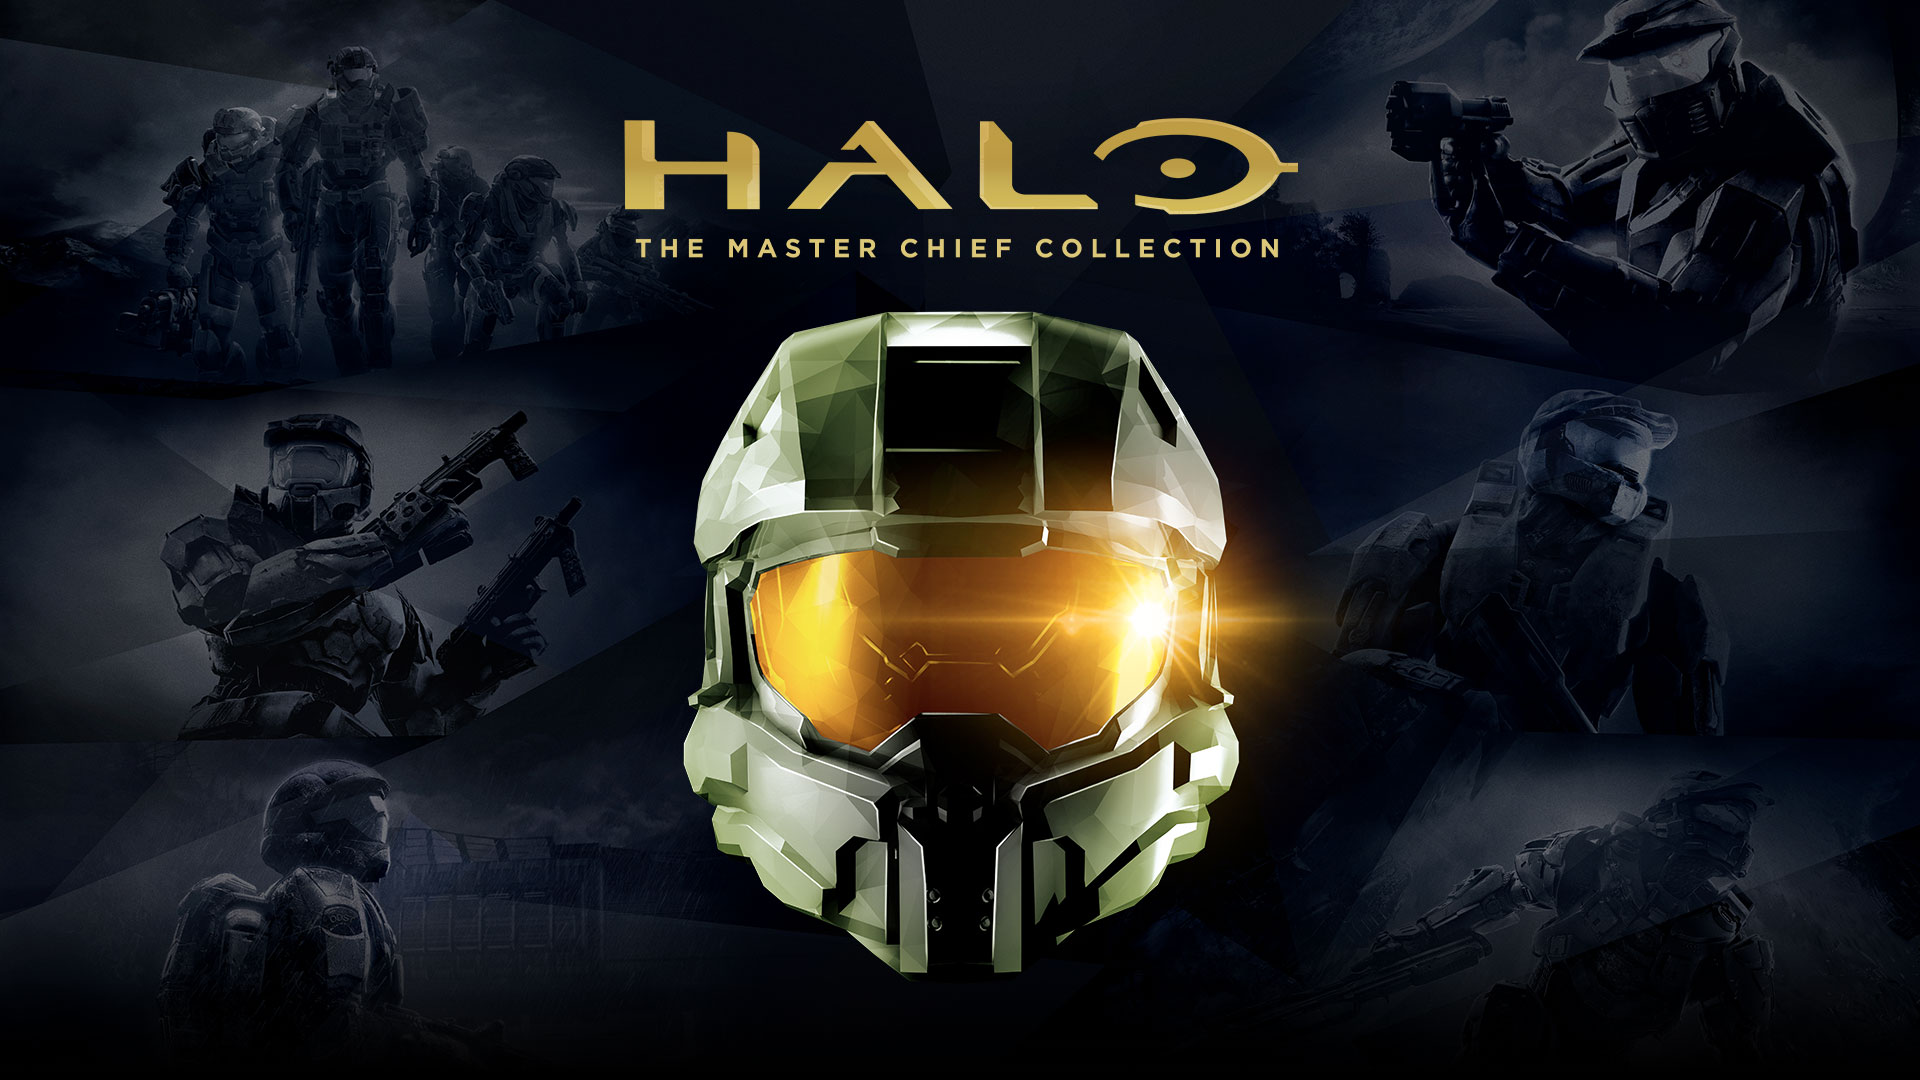 Halo The Master Chief Collection, casco de Master Chief contra un fondo transparente de imágenes de la caja de Halo